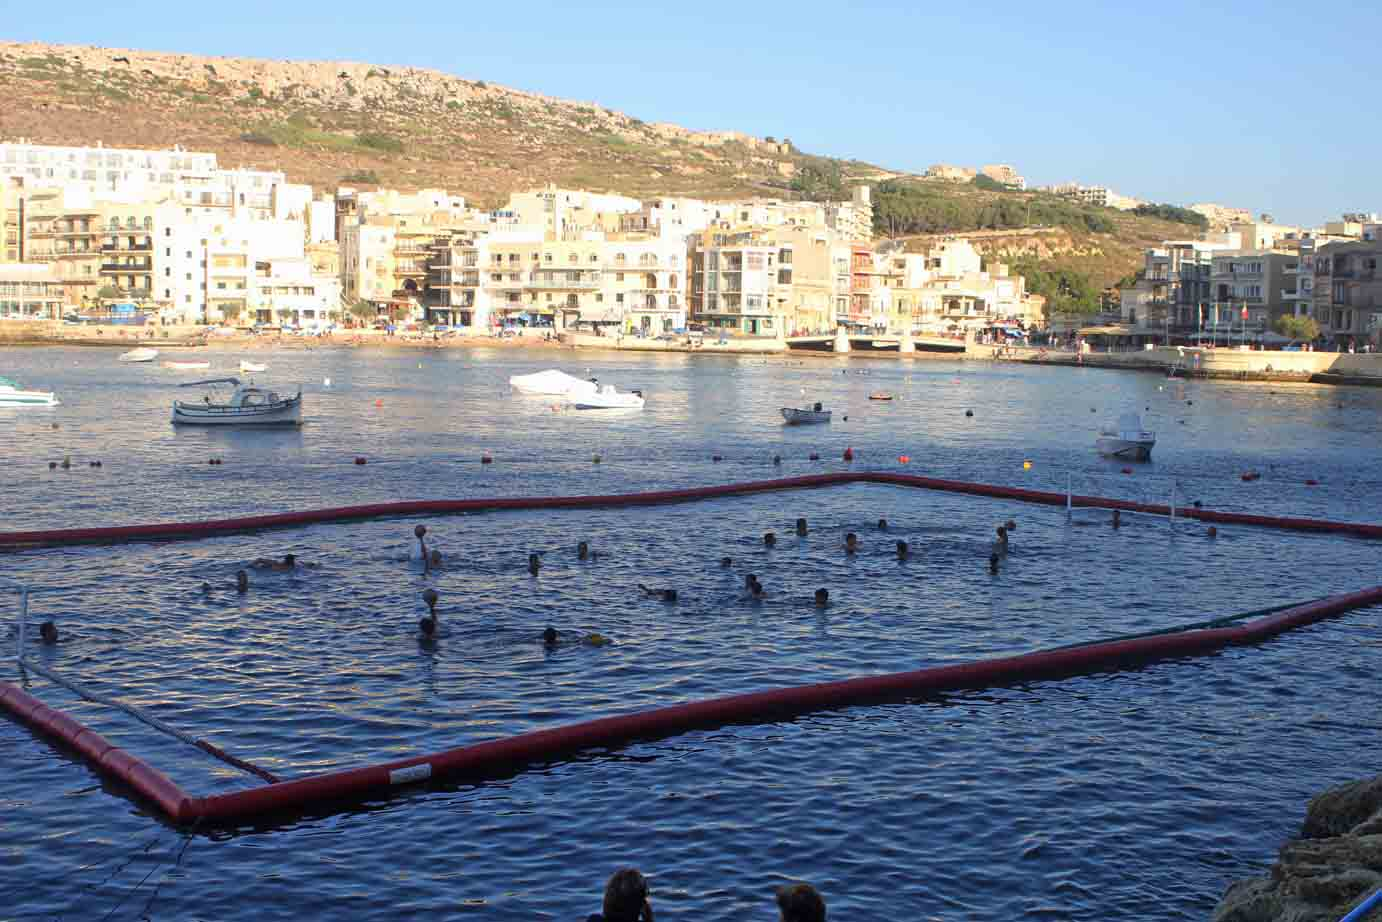 Boomswim Water Polo pool pitch in Malta